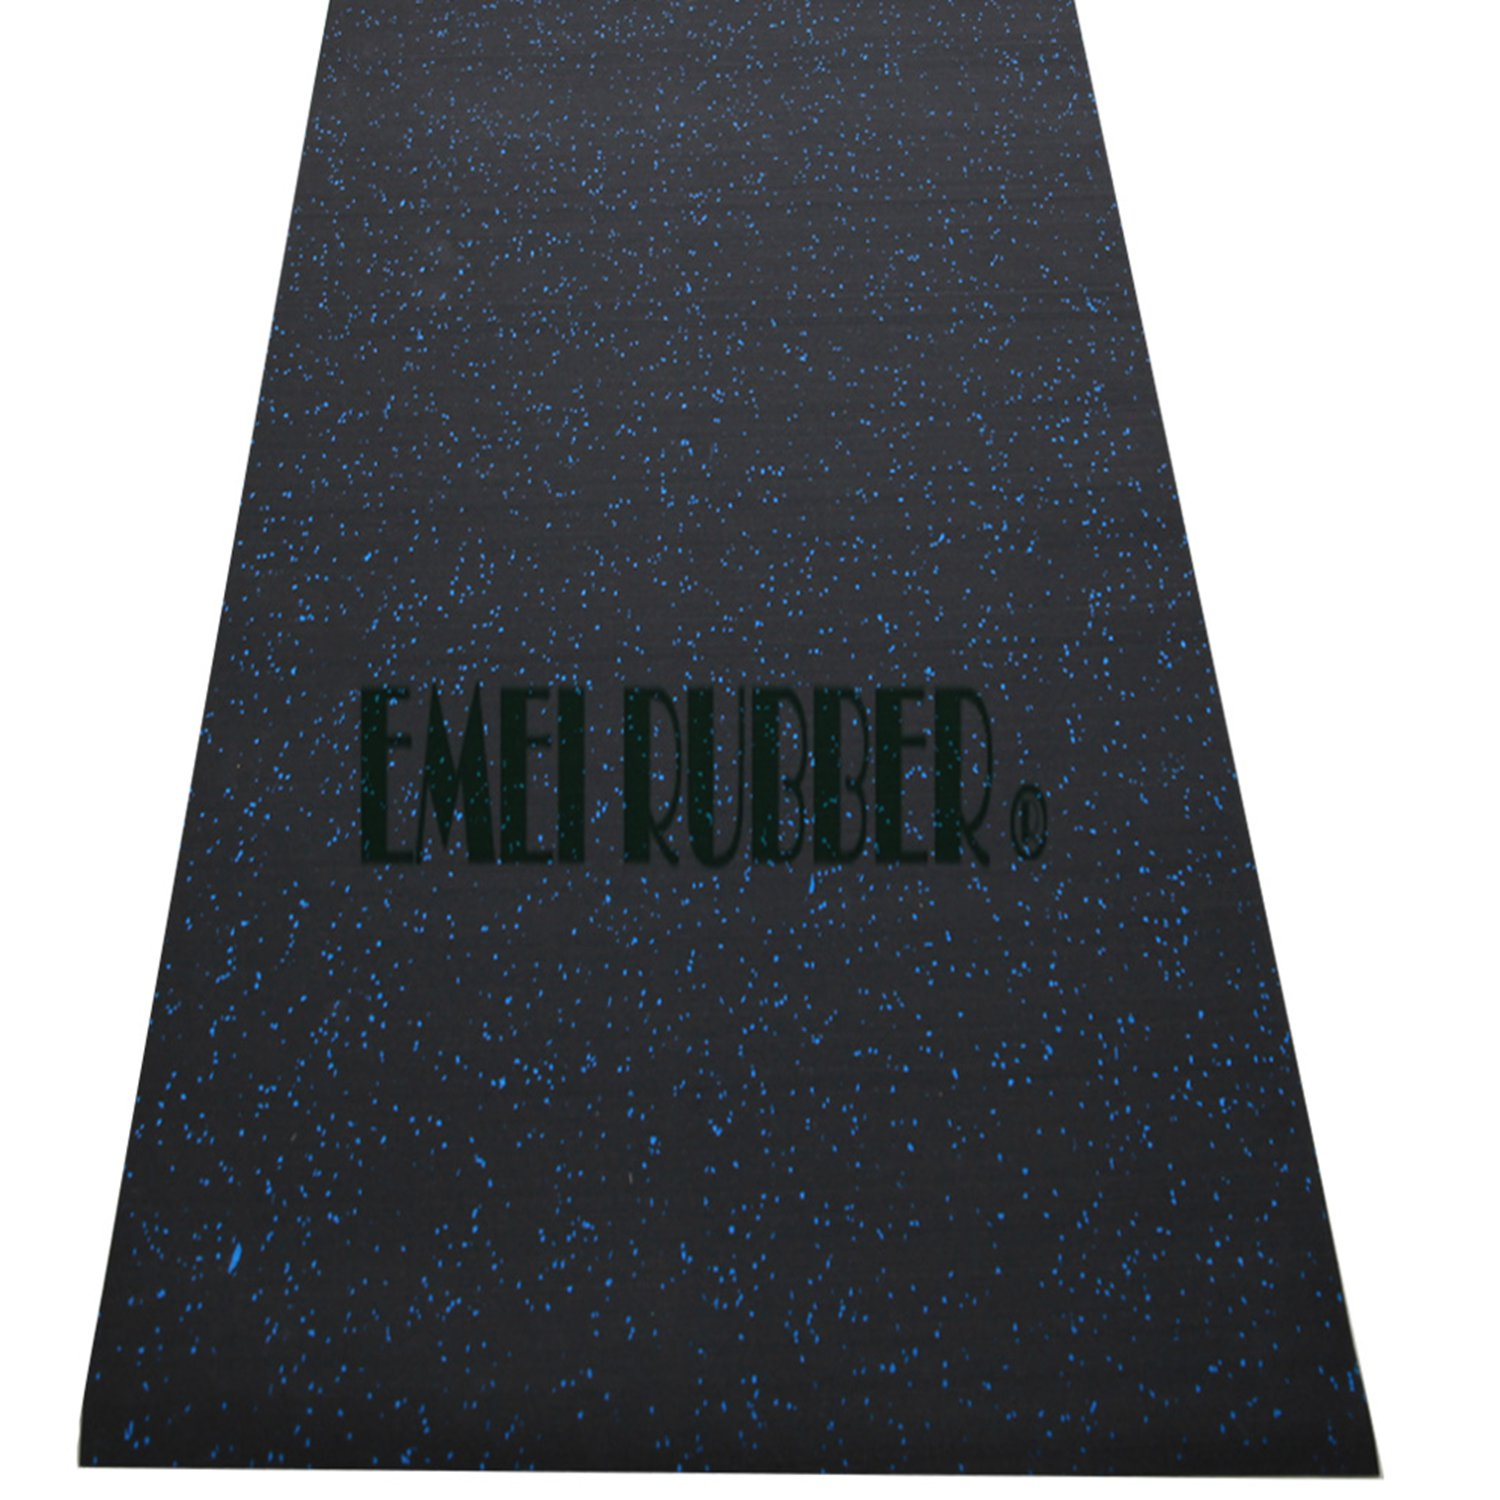 Large exercise rubber mat